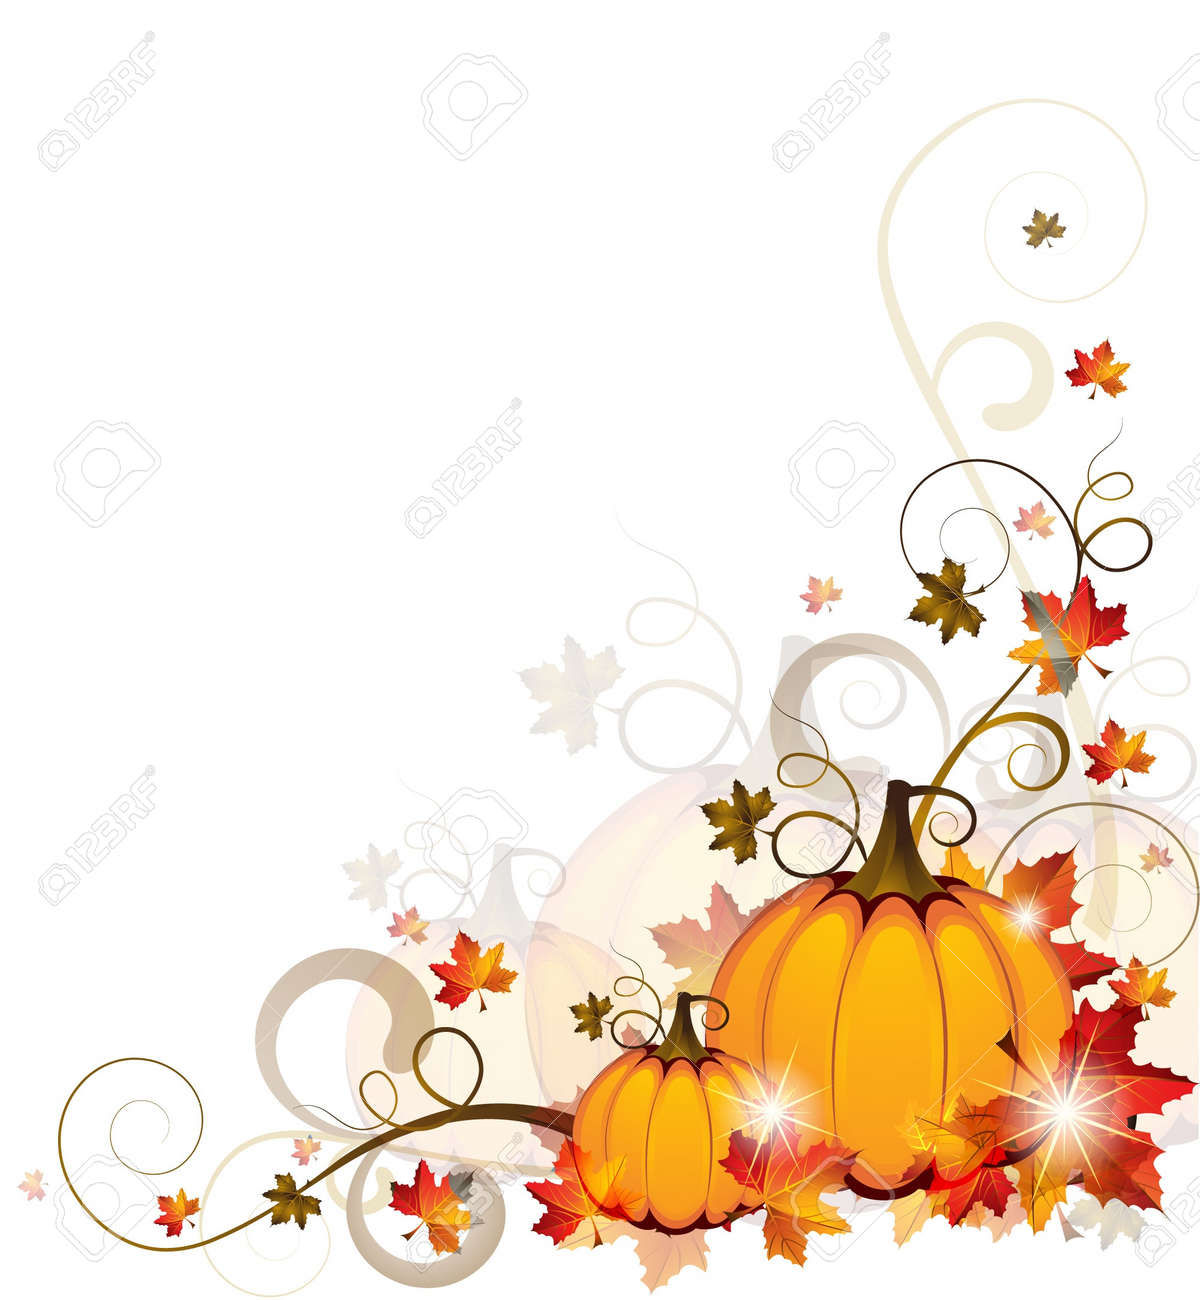 Background with Pumpkins Stock Vector - 15123739